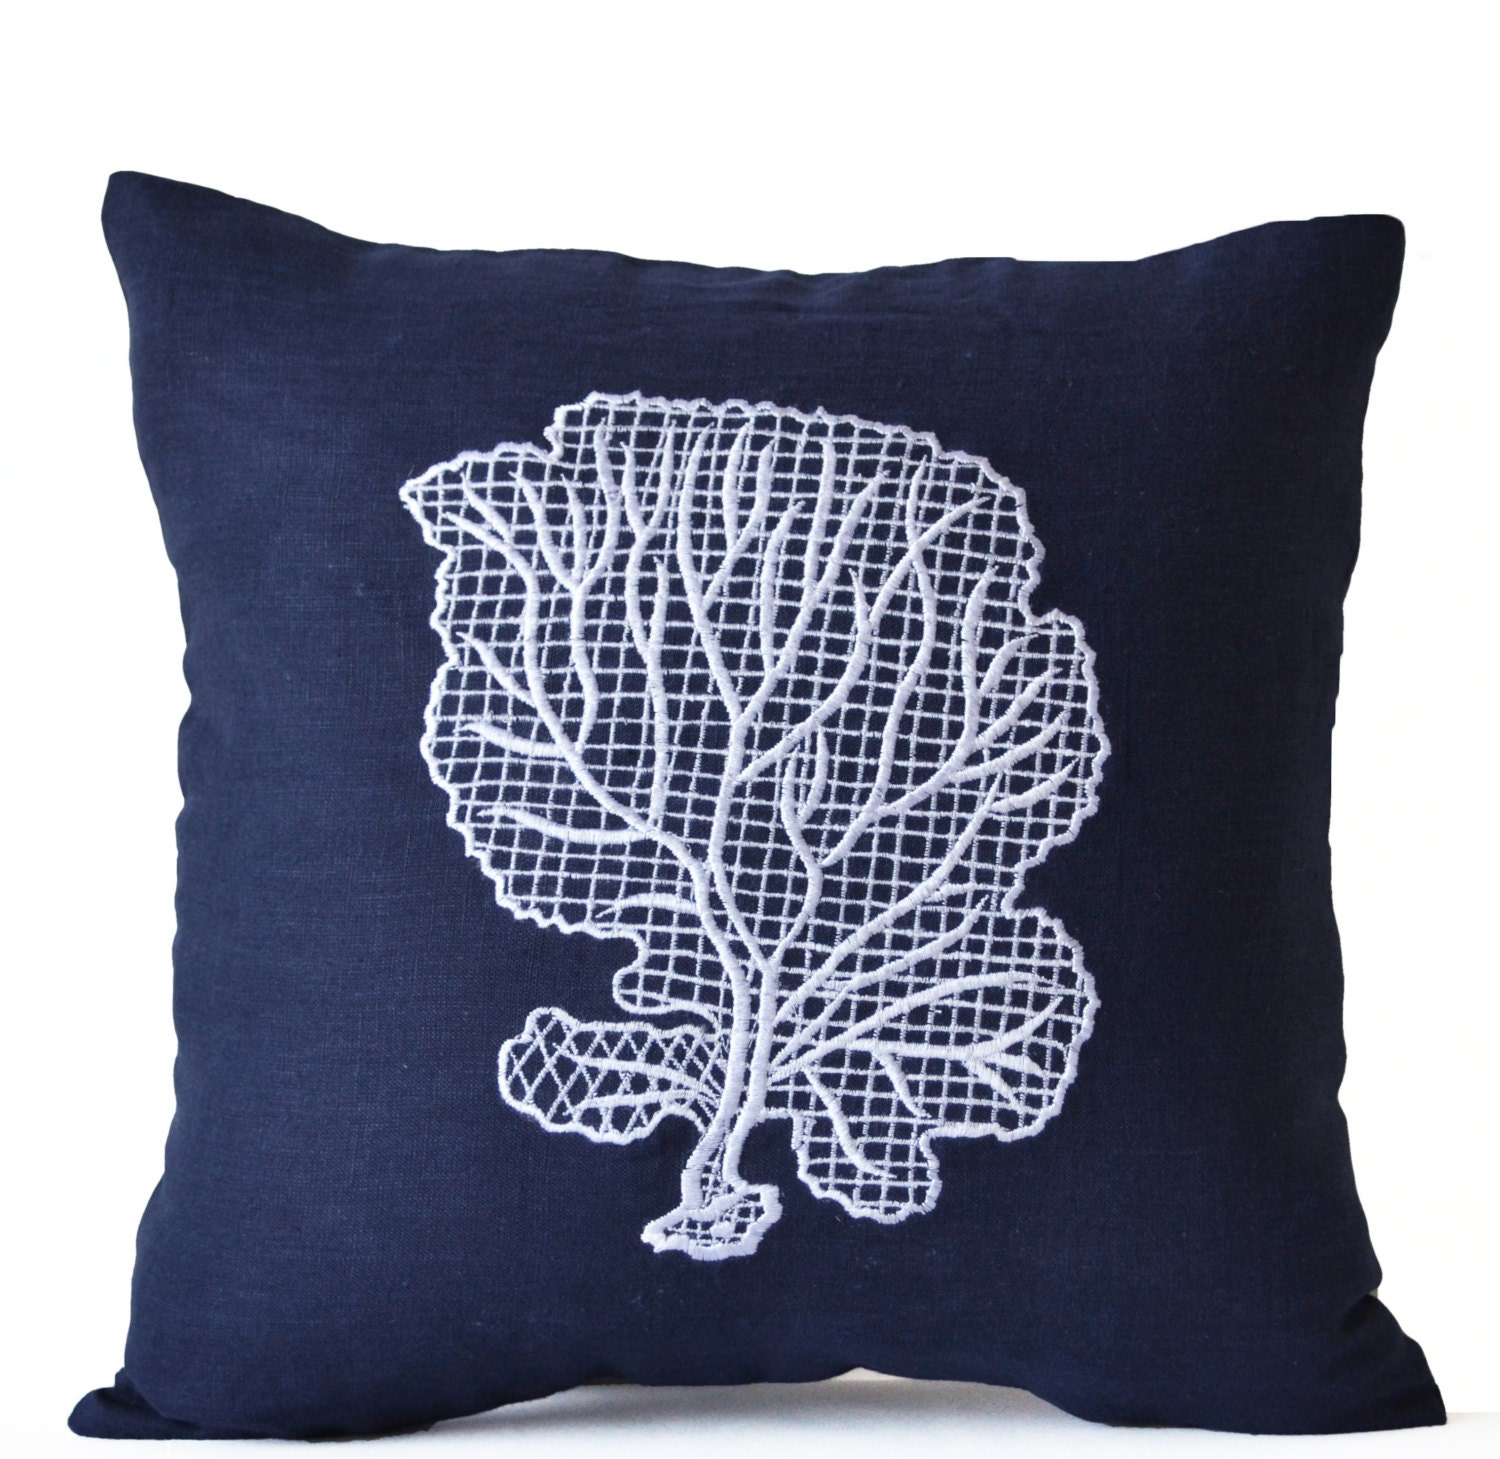 Throw Pillows For Navy Blue Couch : Navy Blue Throw Pillow Case Beach Decor Oceanic Pillow